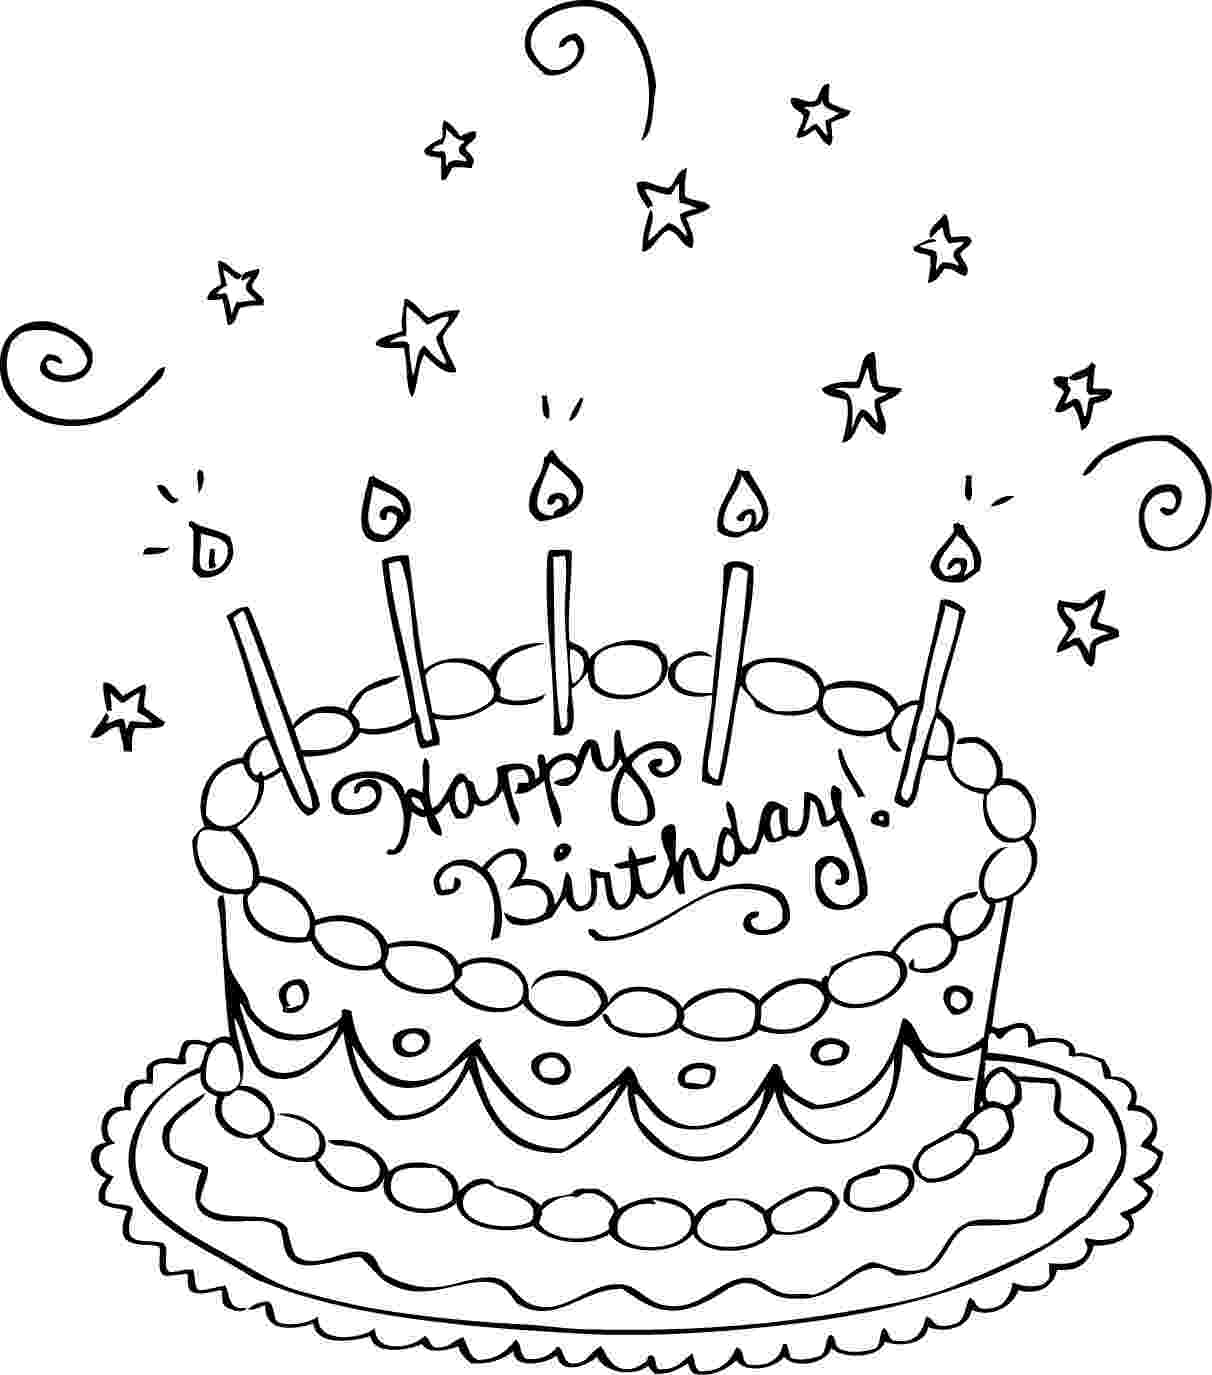 printable colouring birthday pictures free printable birthday cake coloring pages for kids pictures printable birthday colouring